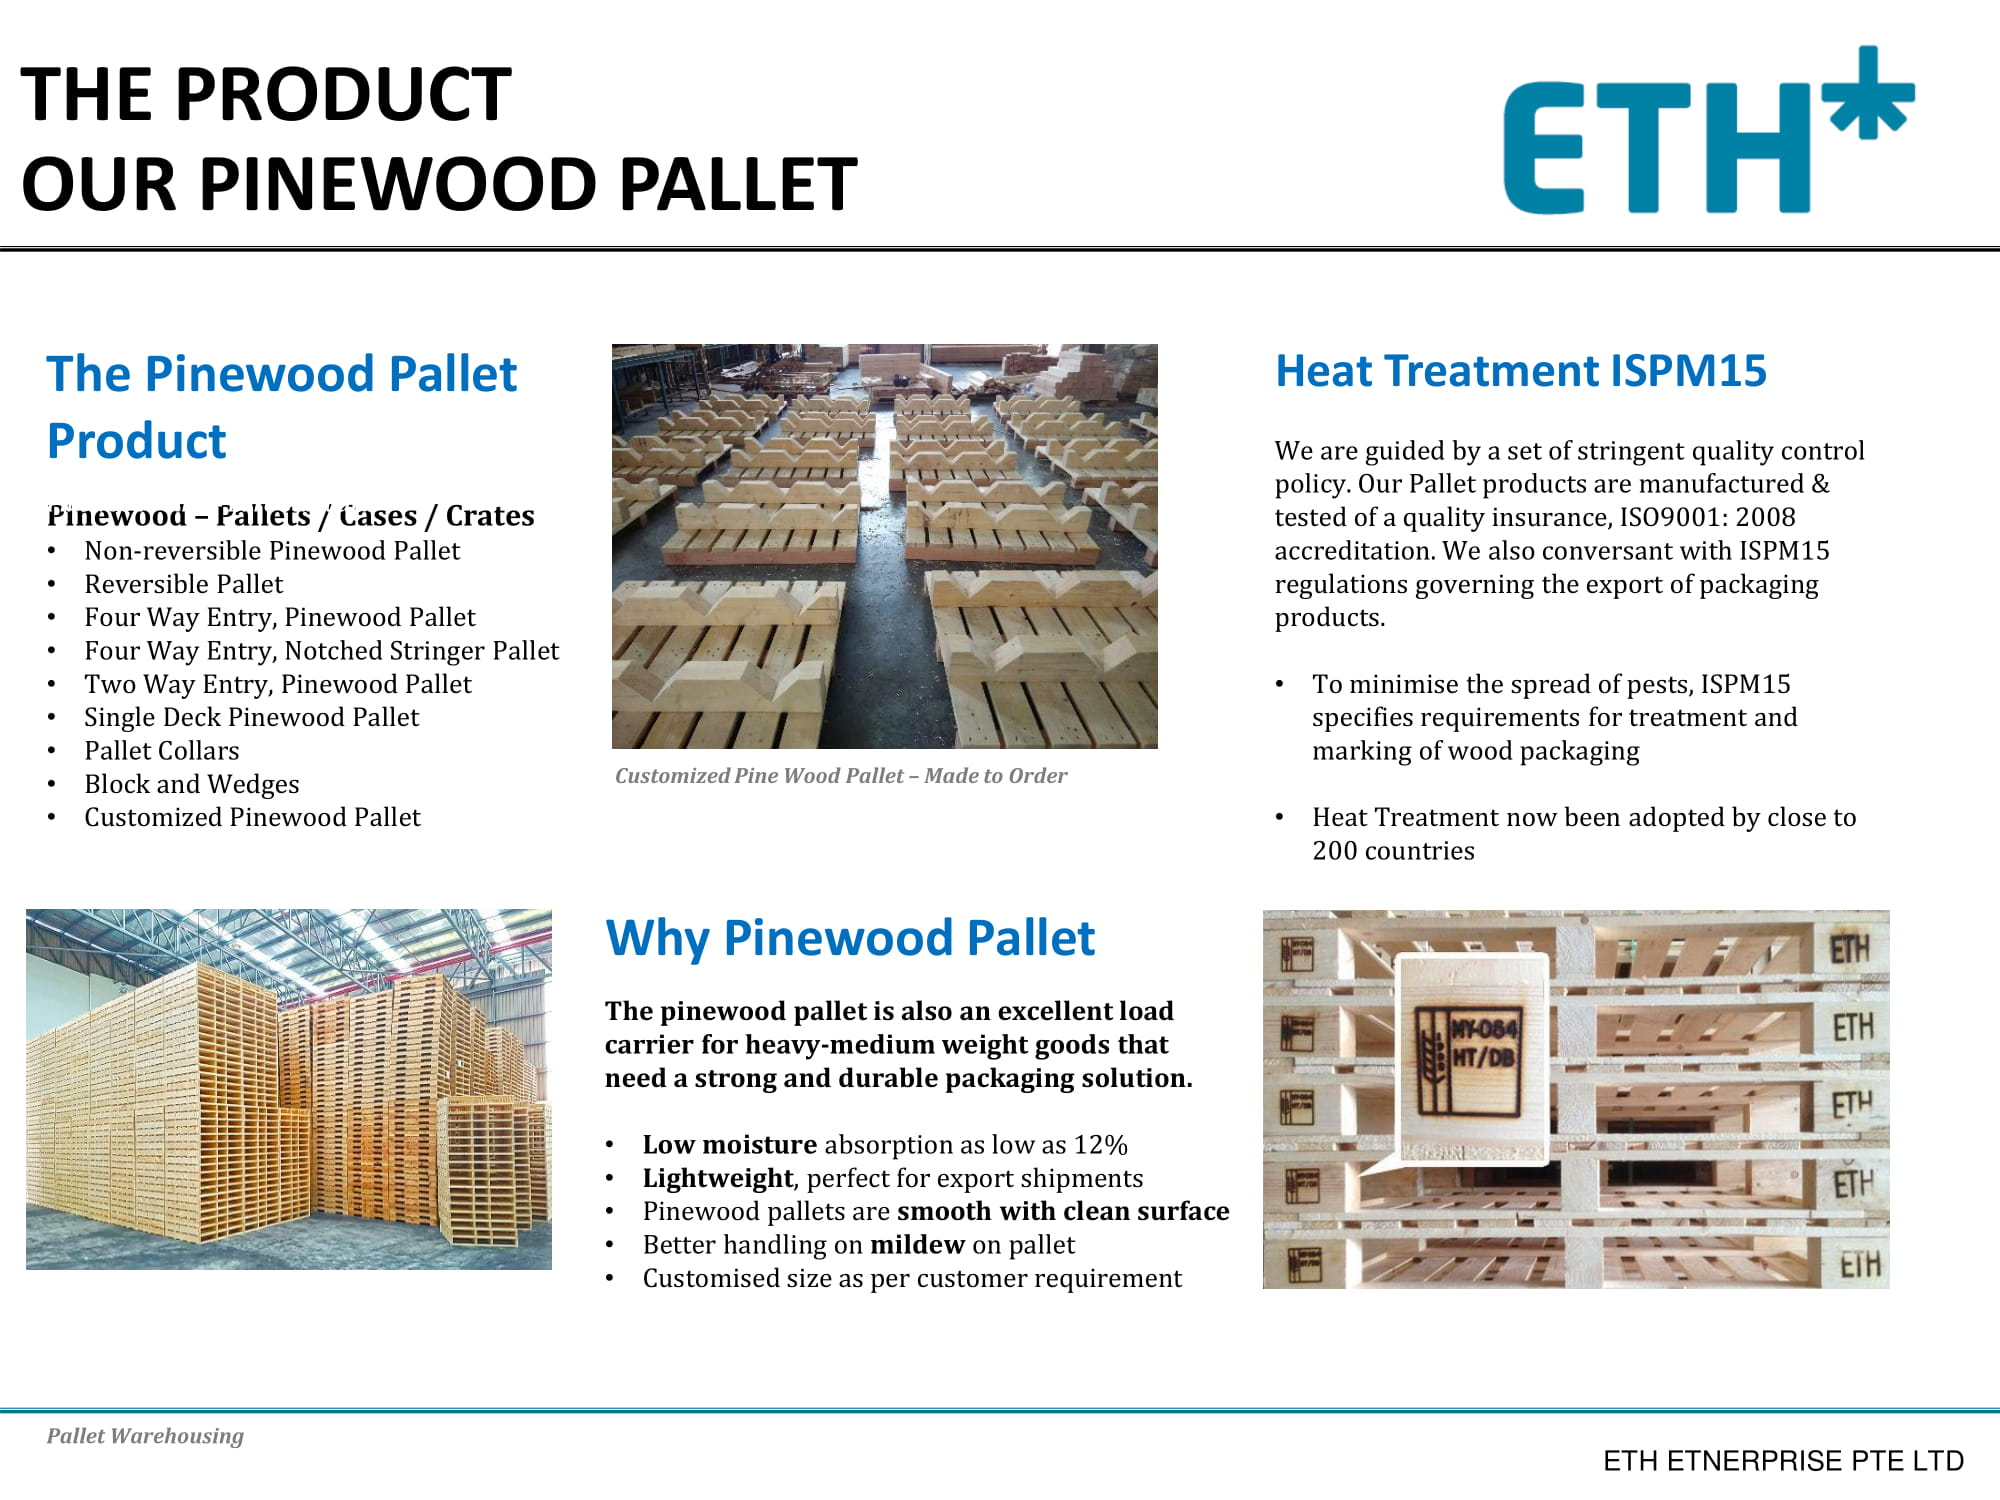 Eth Pine Wood Pallet Industrial Packaging Builtory Product